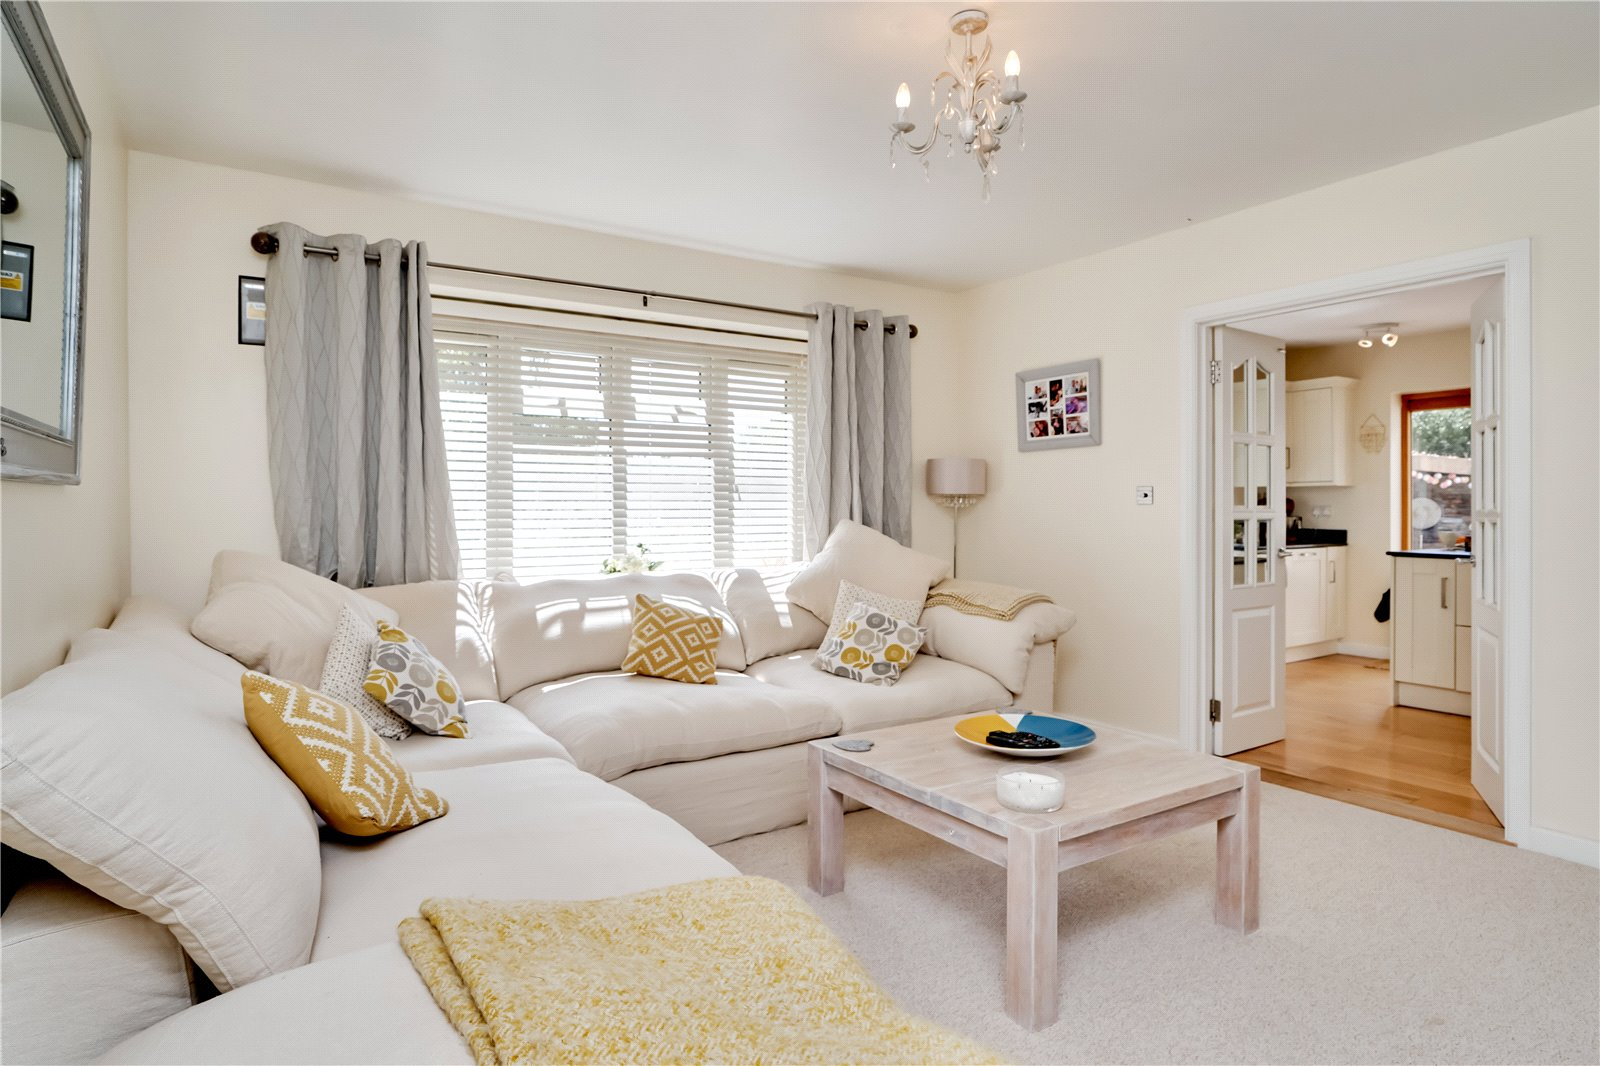 4 bed house for sale in Heathbrow Road, Old Welwyn  - Property Image 3